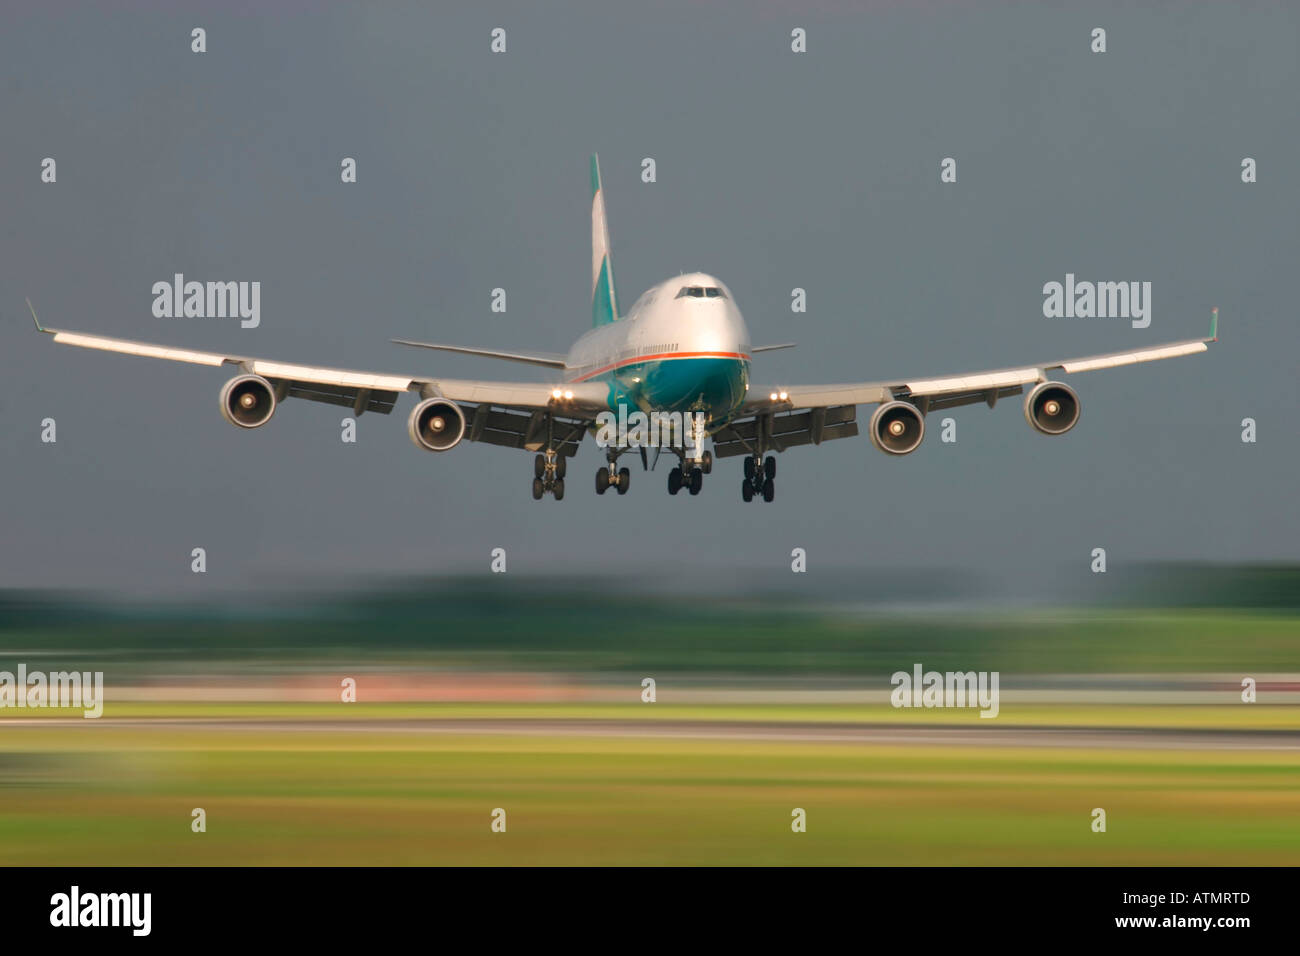 Large passenger jet landing with motion blur in the background - Stock Image